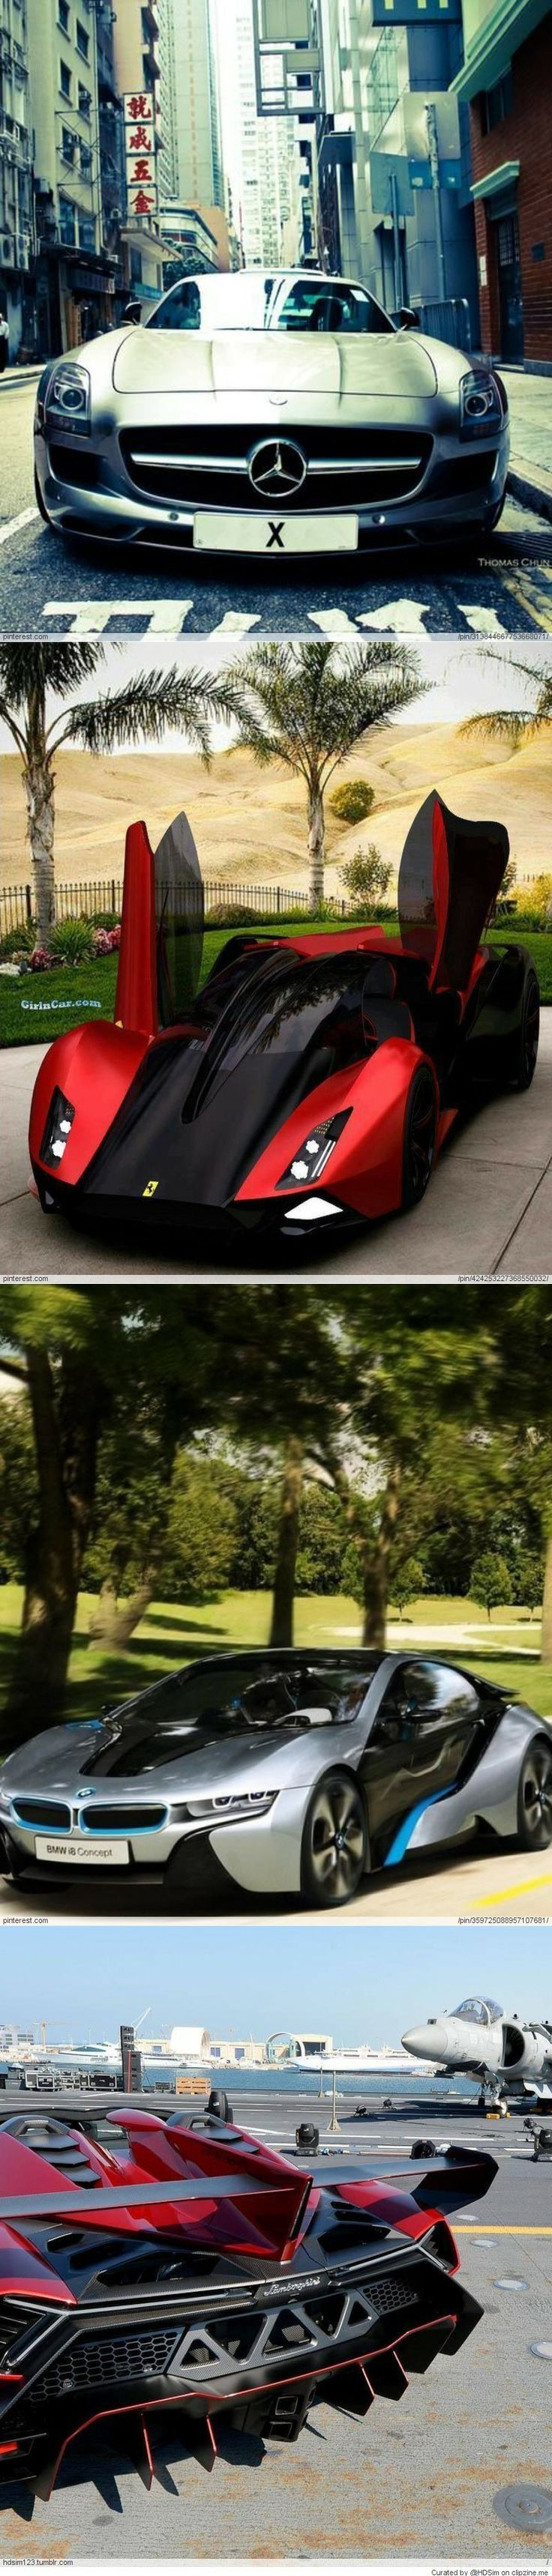 Car Lovers : Cool Cars :) - top 10 daily pins of http://insureturbo ...